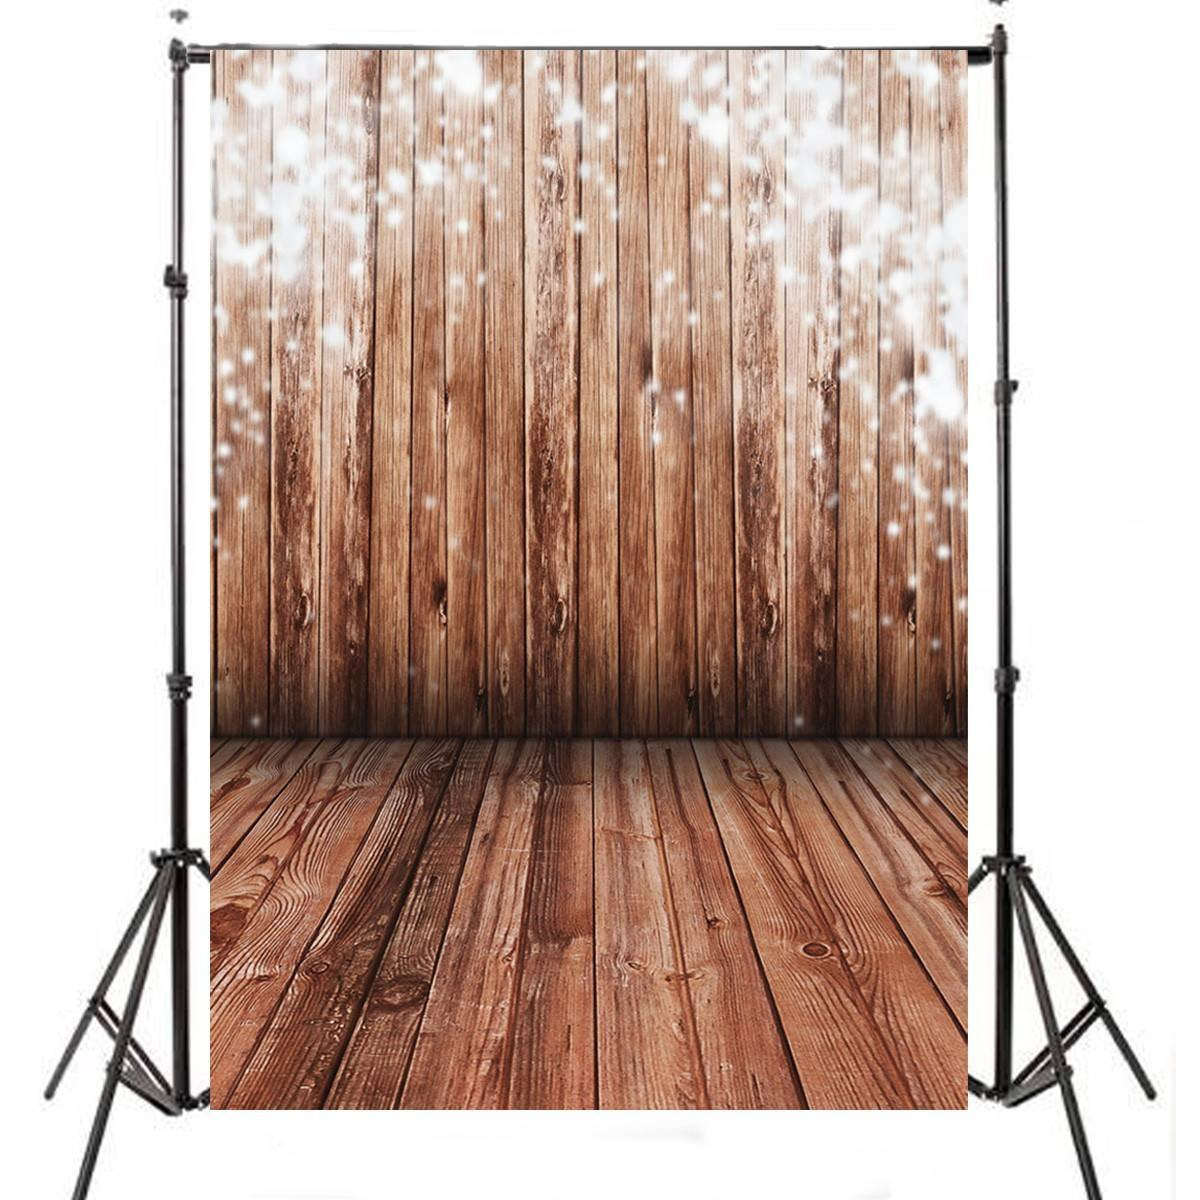 5x7FT Wood Wall Vinyl Photography Backdrop Photo Background Studio Props High Quality New Best Price sjoloon forest photography backdrops wood floor photography background summer photo photo background photo studio vinyl props